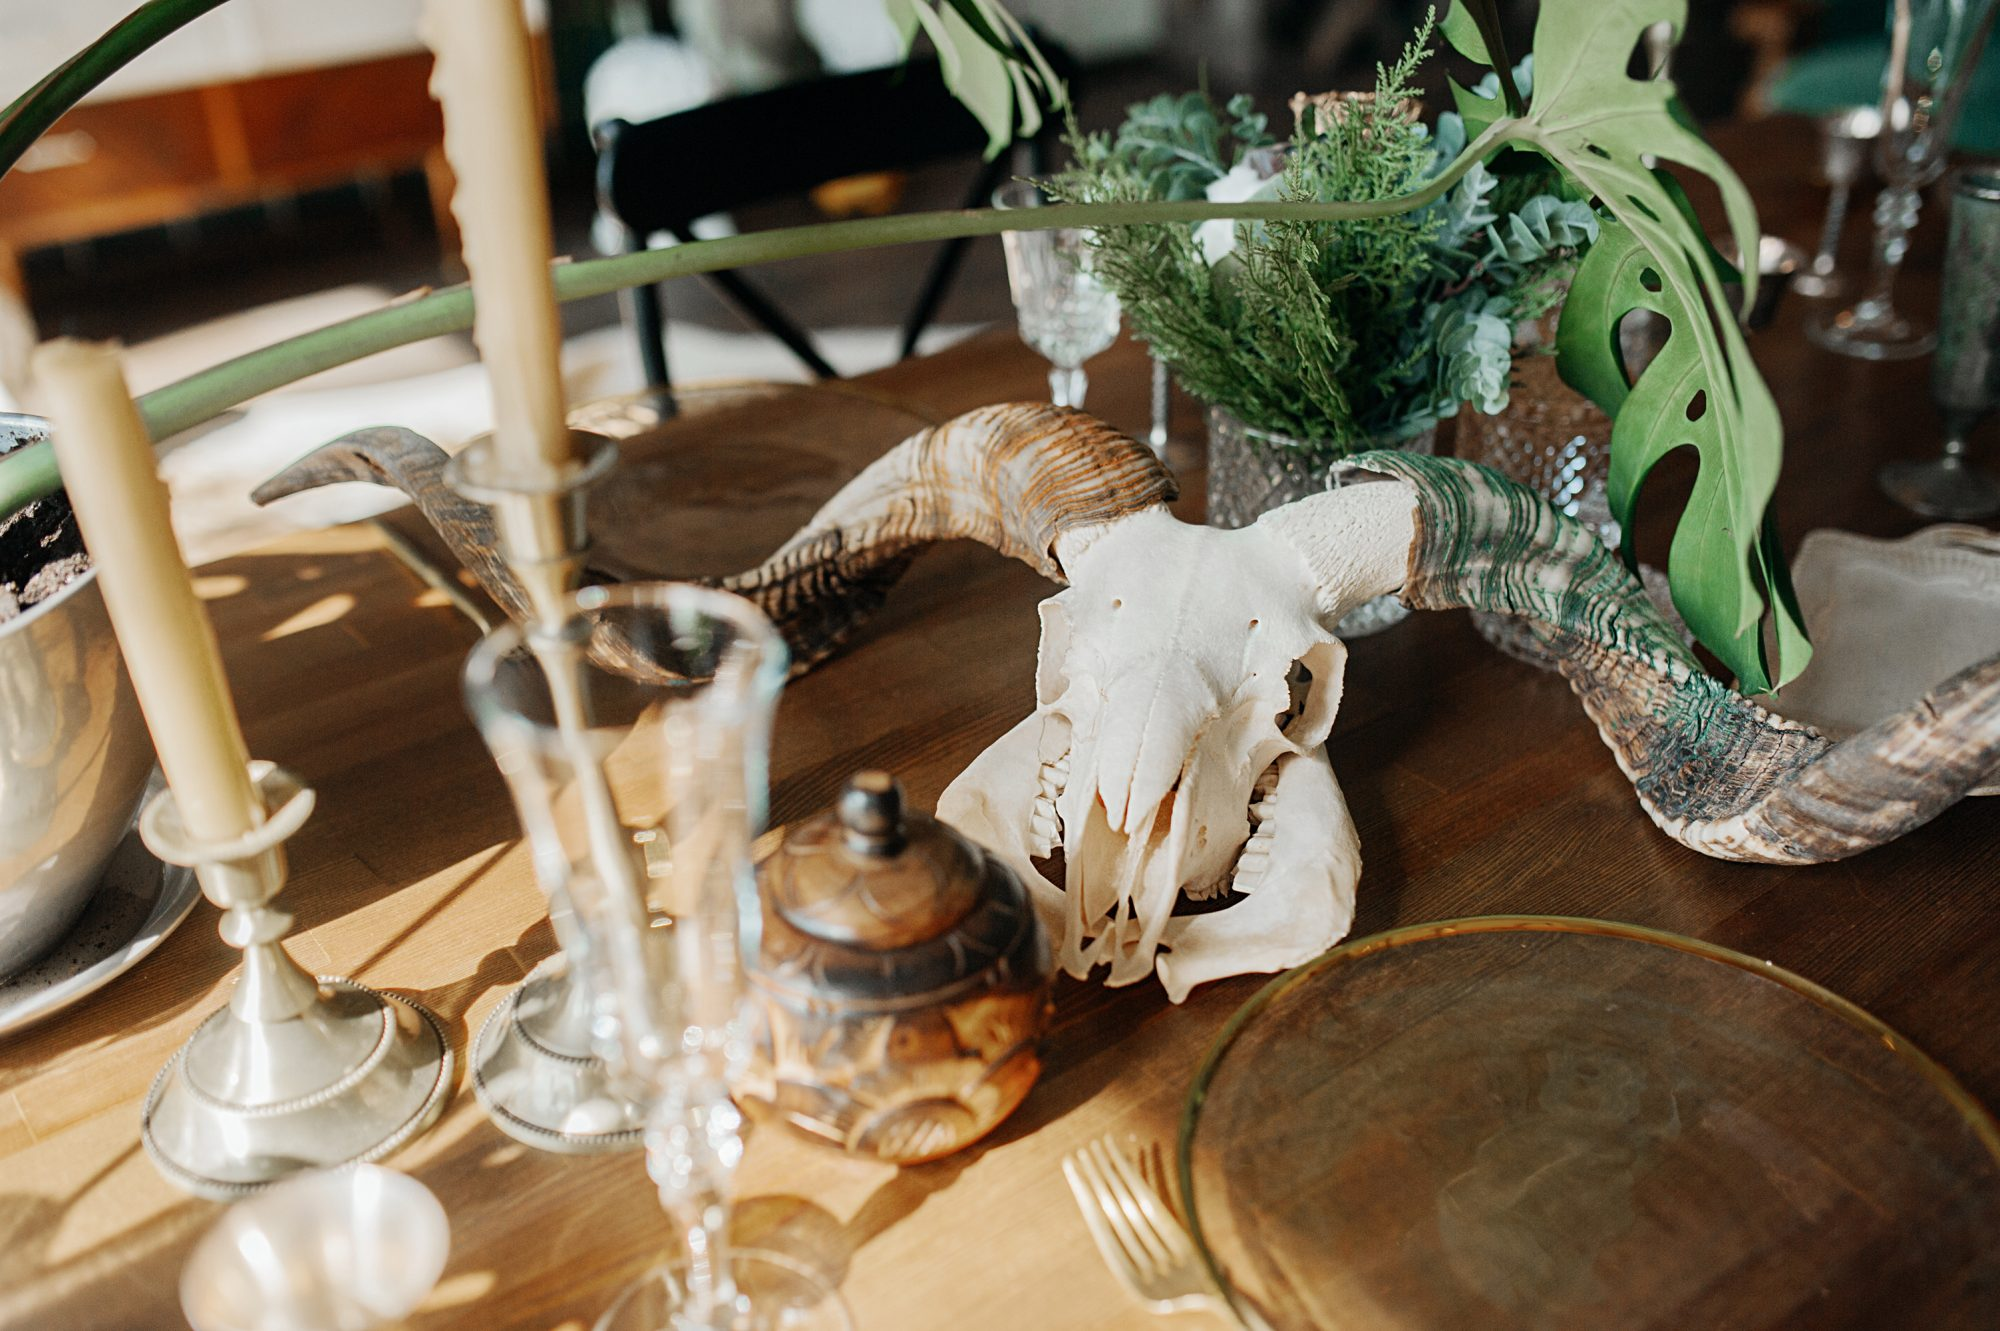 Table setting with a ram's skull